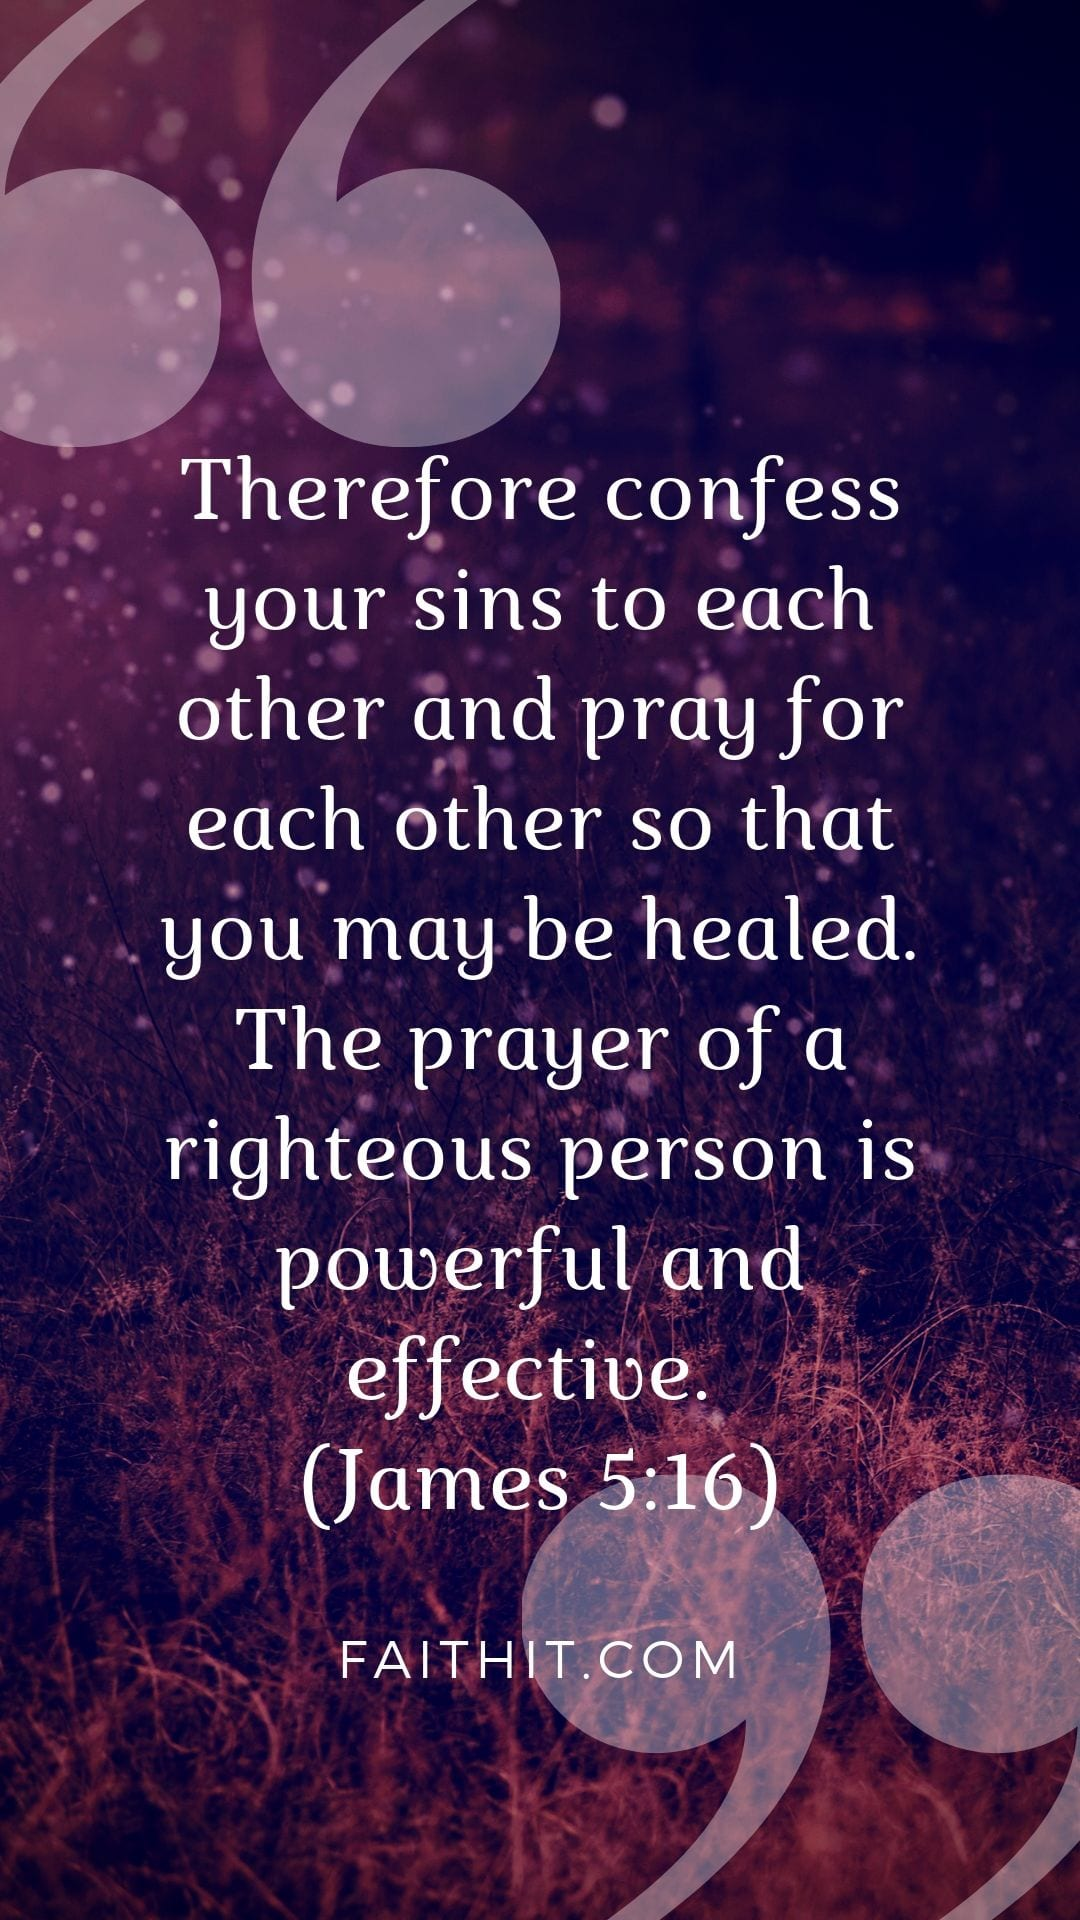 Therefore confess your sins to each other and pray for each other so that you may be healed. The prayer of a righteous person is powerful and effective. (James 5:16)